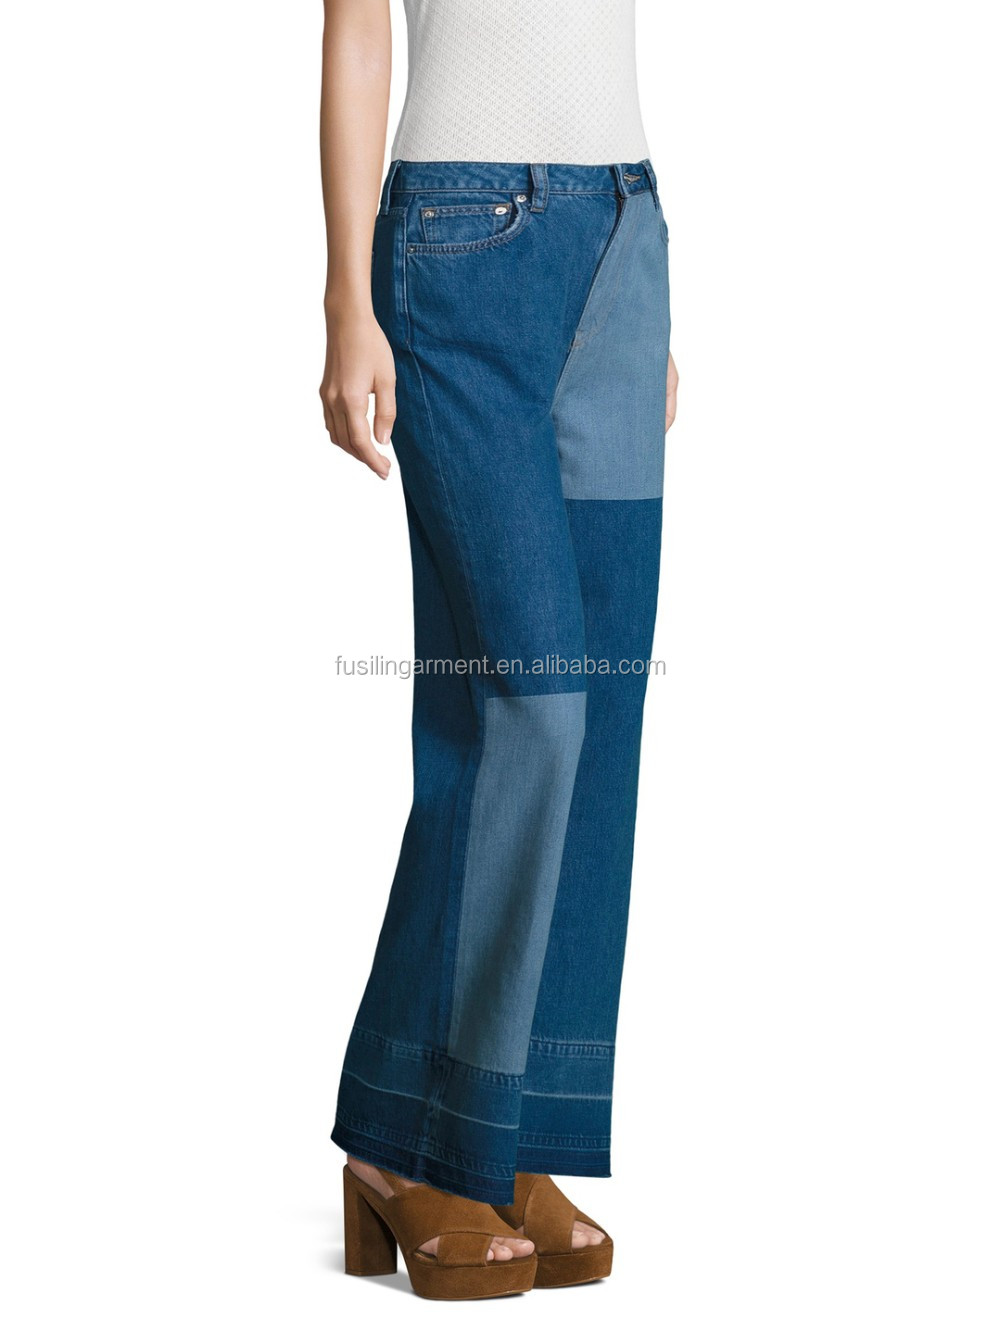 Newest Red Blue Denim Brand Jeans Wide Leg Patchwork Jean